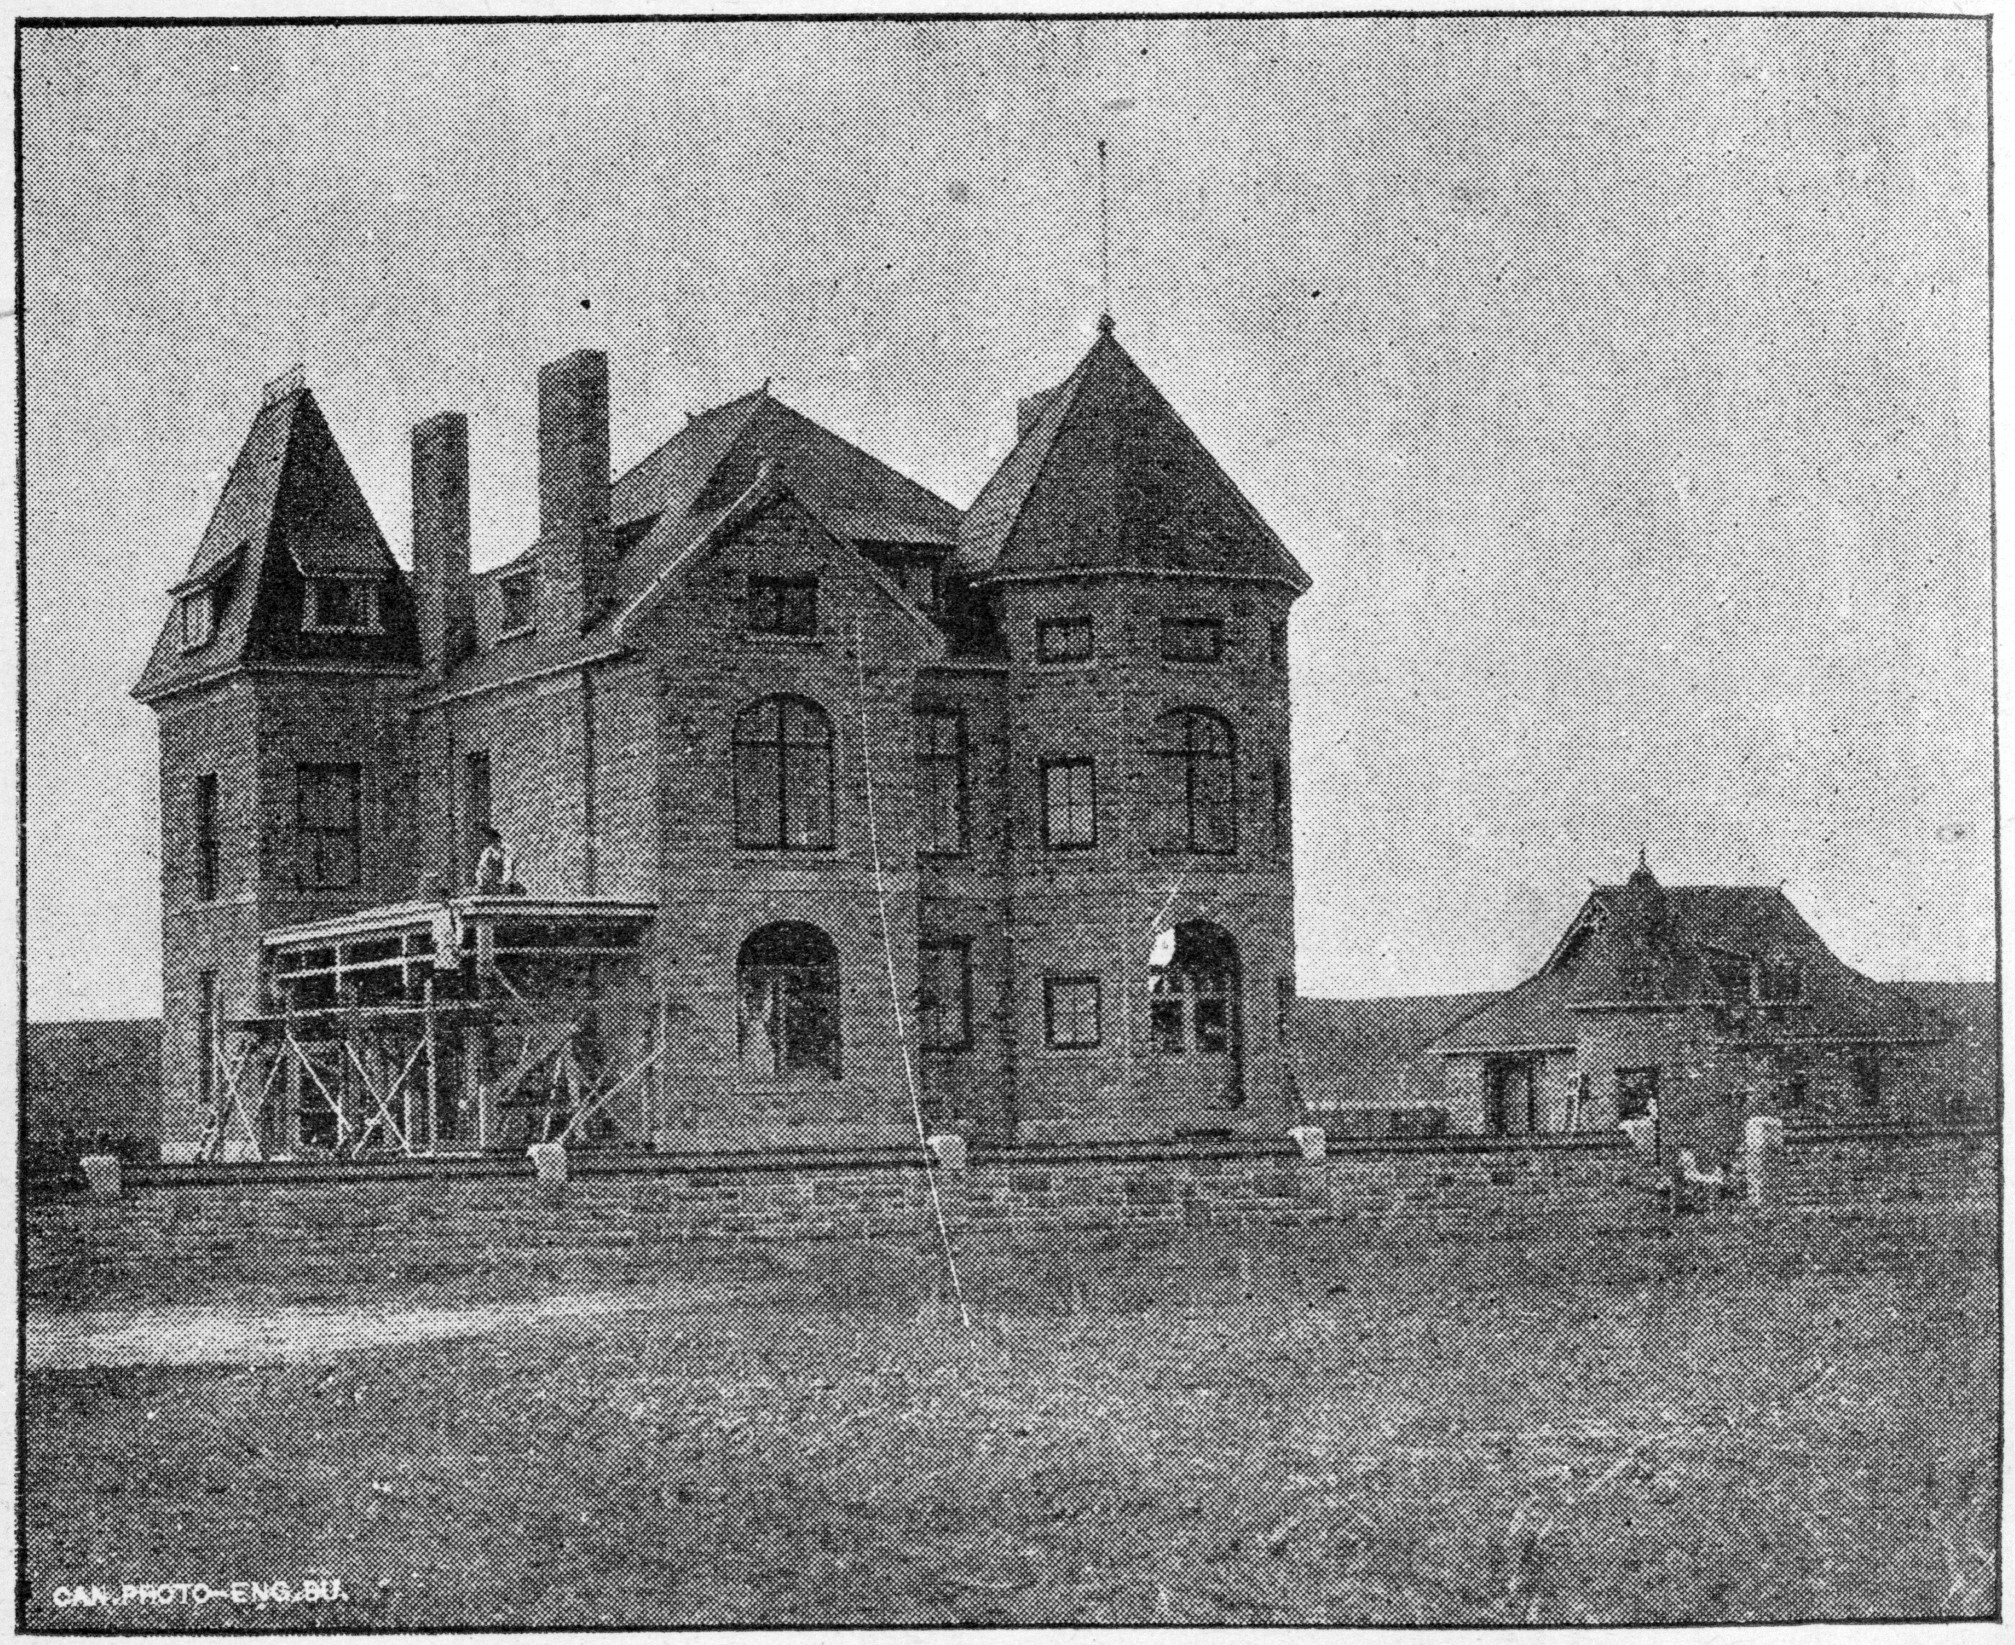 Construction of Lougheed House, 1891